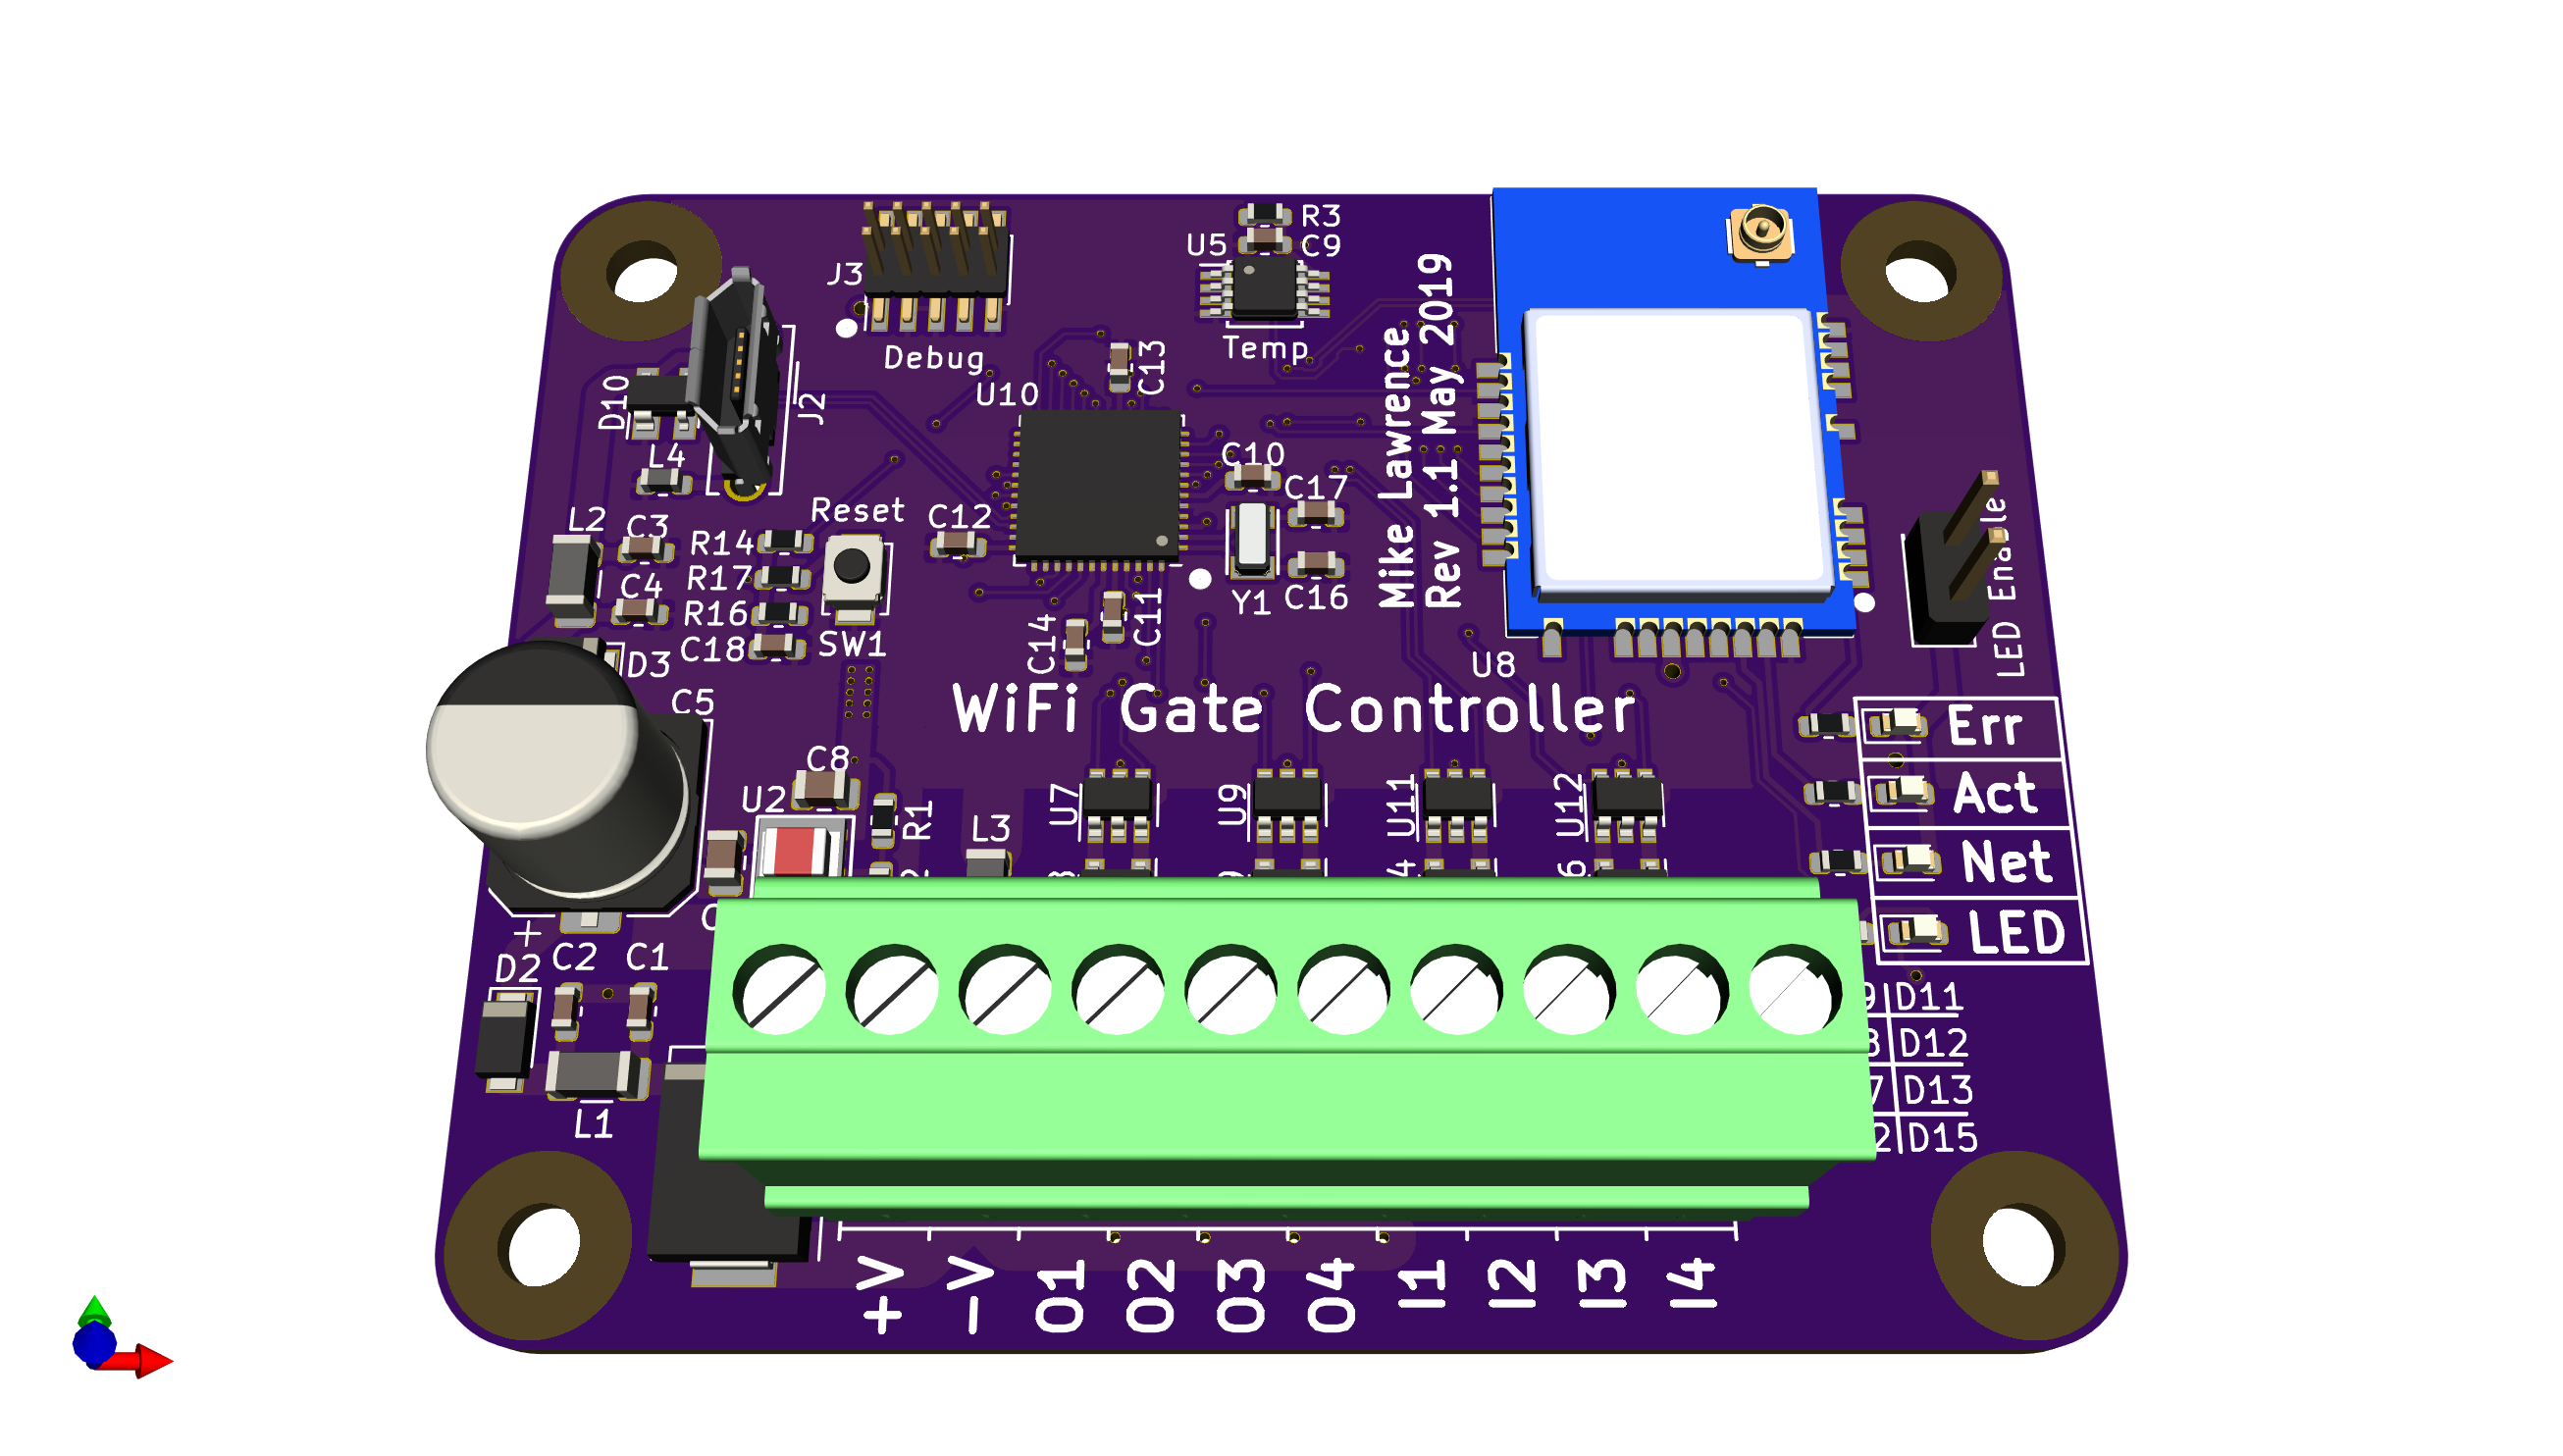 Wifi Gate Controller is Arduino Compatible